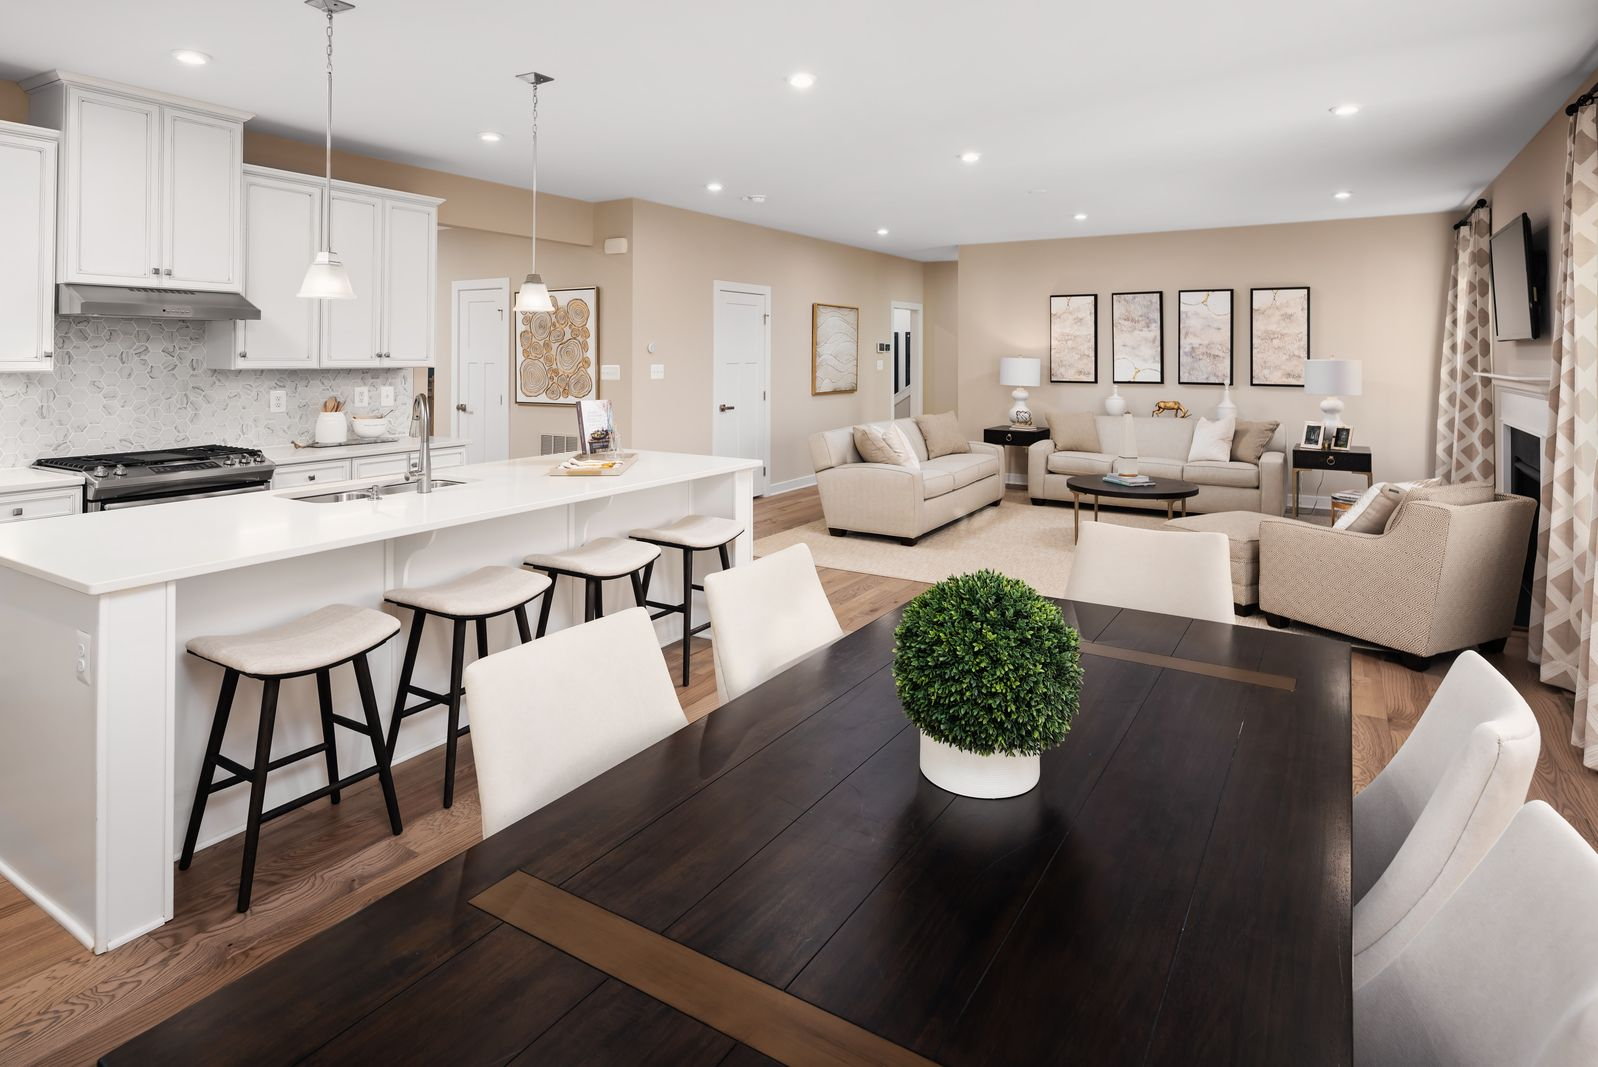 Living Area featured in the Saint Lawrence By Ryan Homes in Washington, MD